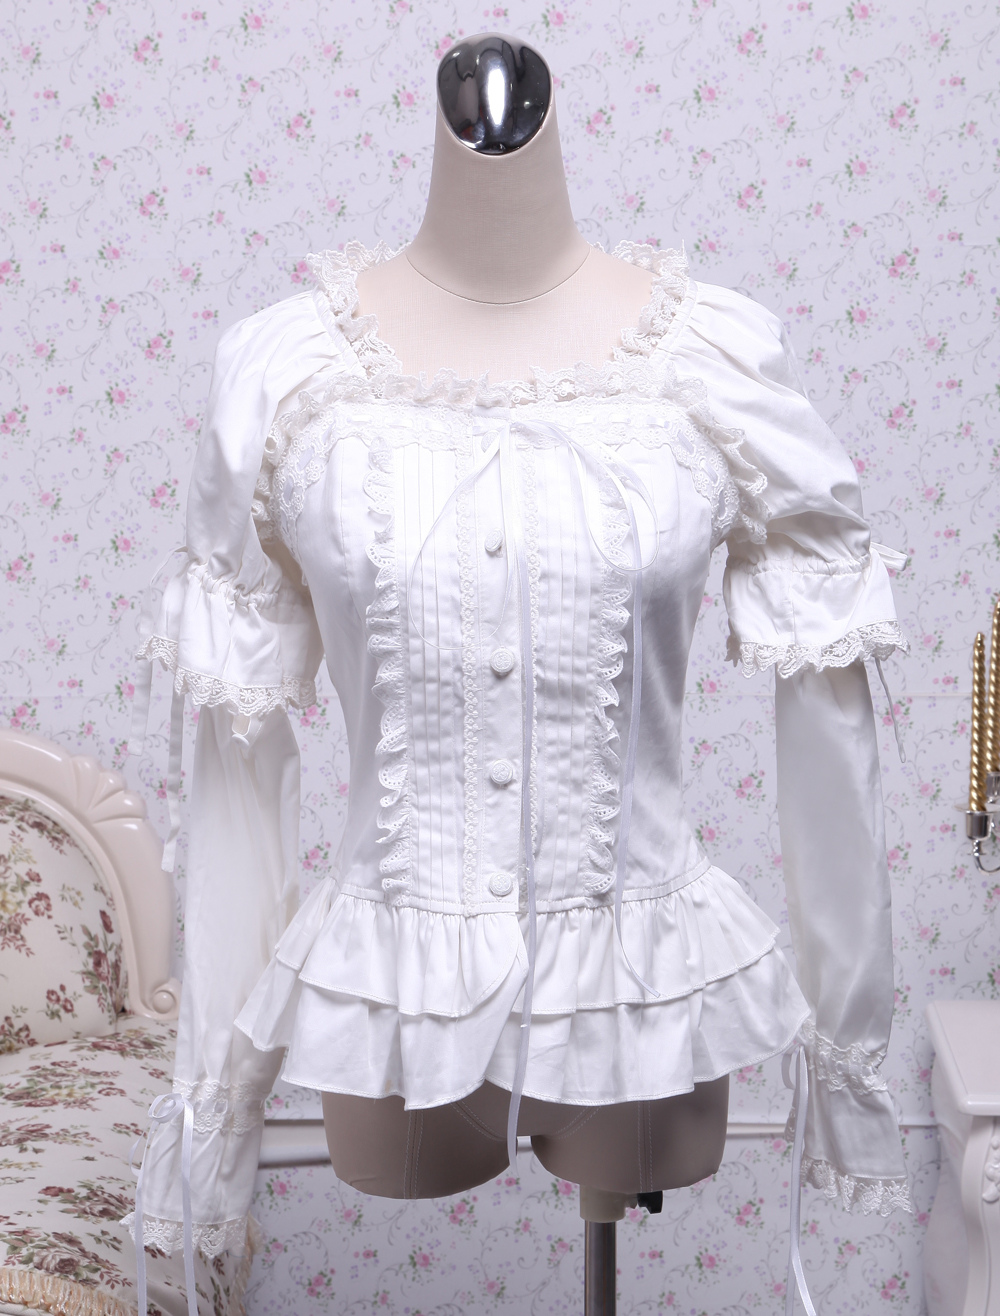 1822281d51d Lolitashow White Cotton Lolita Blouse Long Sleeves Square Neck Lace Trim  Layered Ruffles Lace Bow - Lolitashow.com